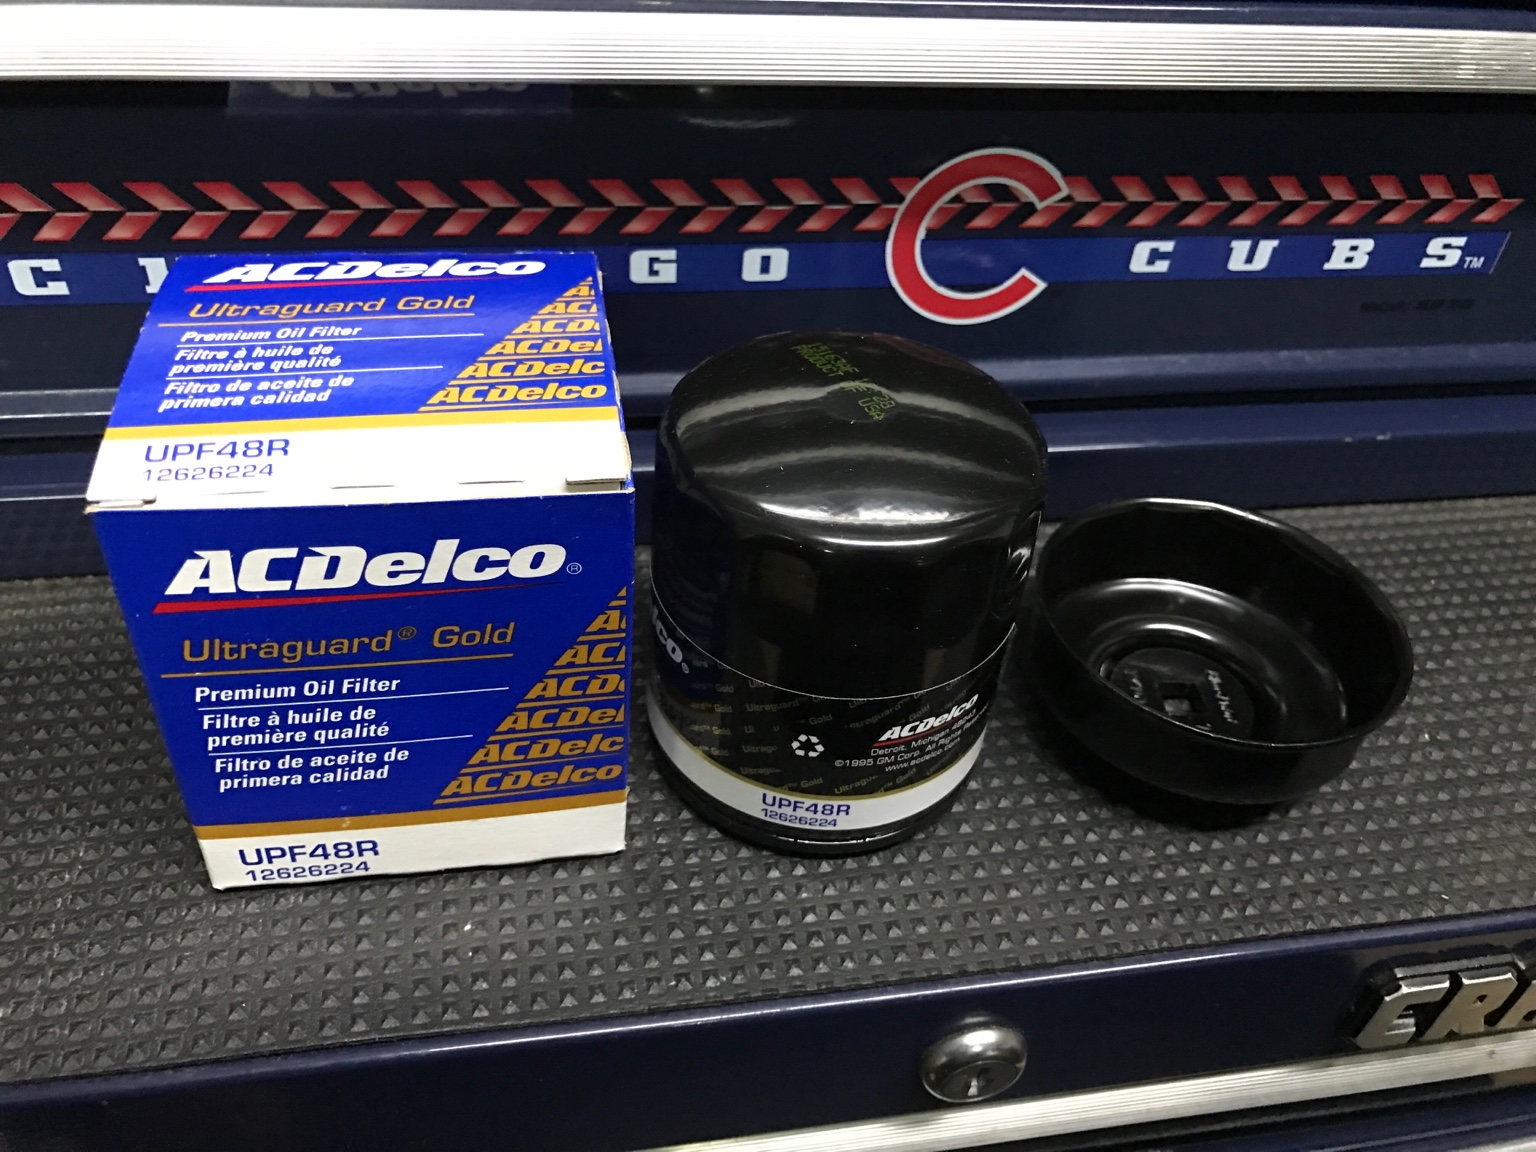 Upf48r Ac Delco Oil Filter Wrench - Vehicle Appearance  Care   U0026 Maintenance